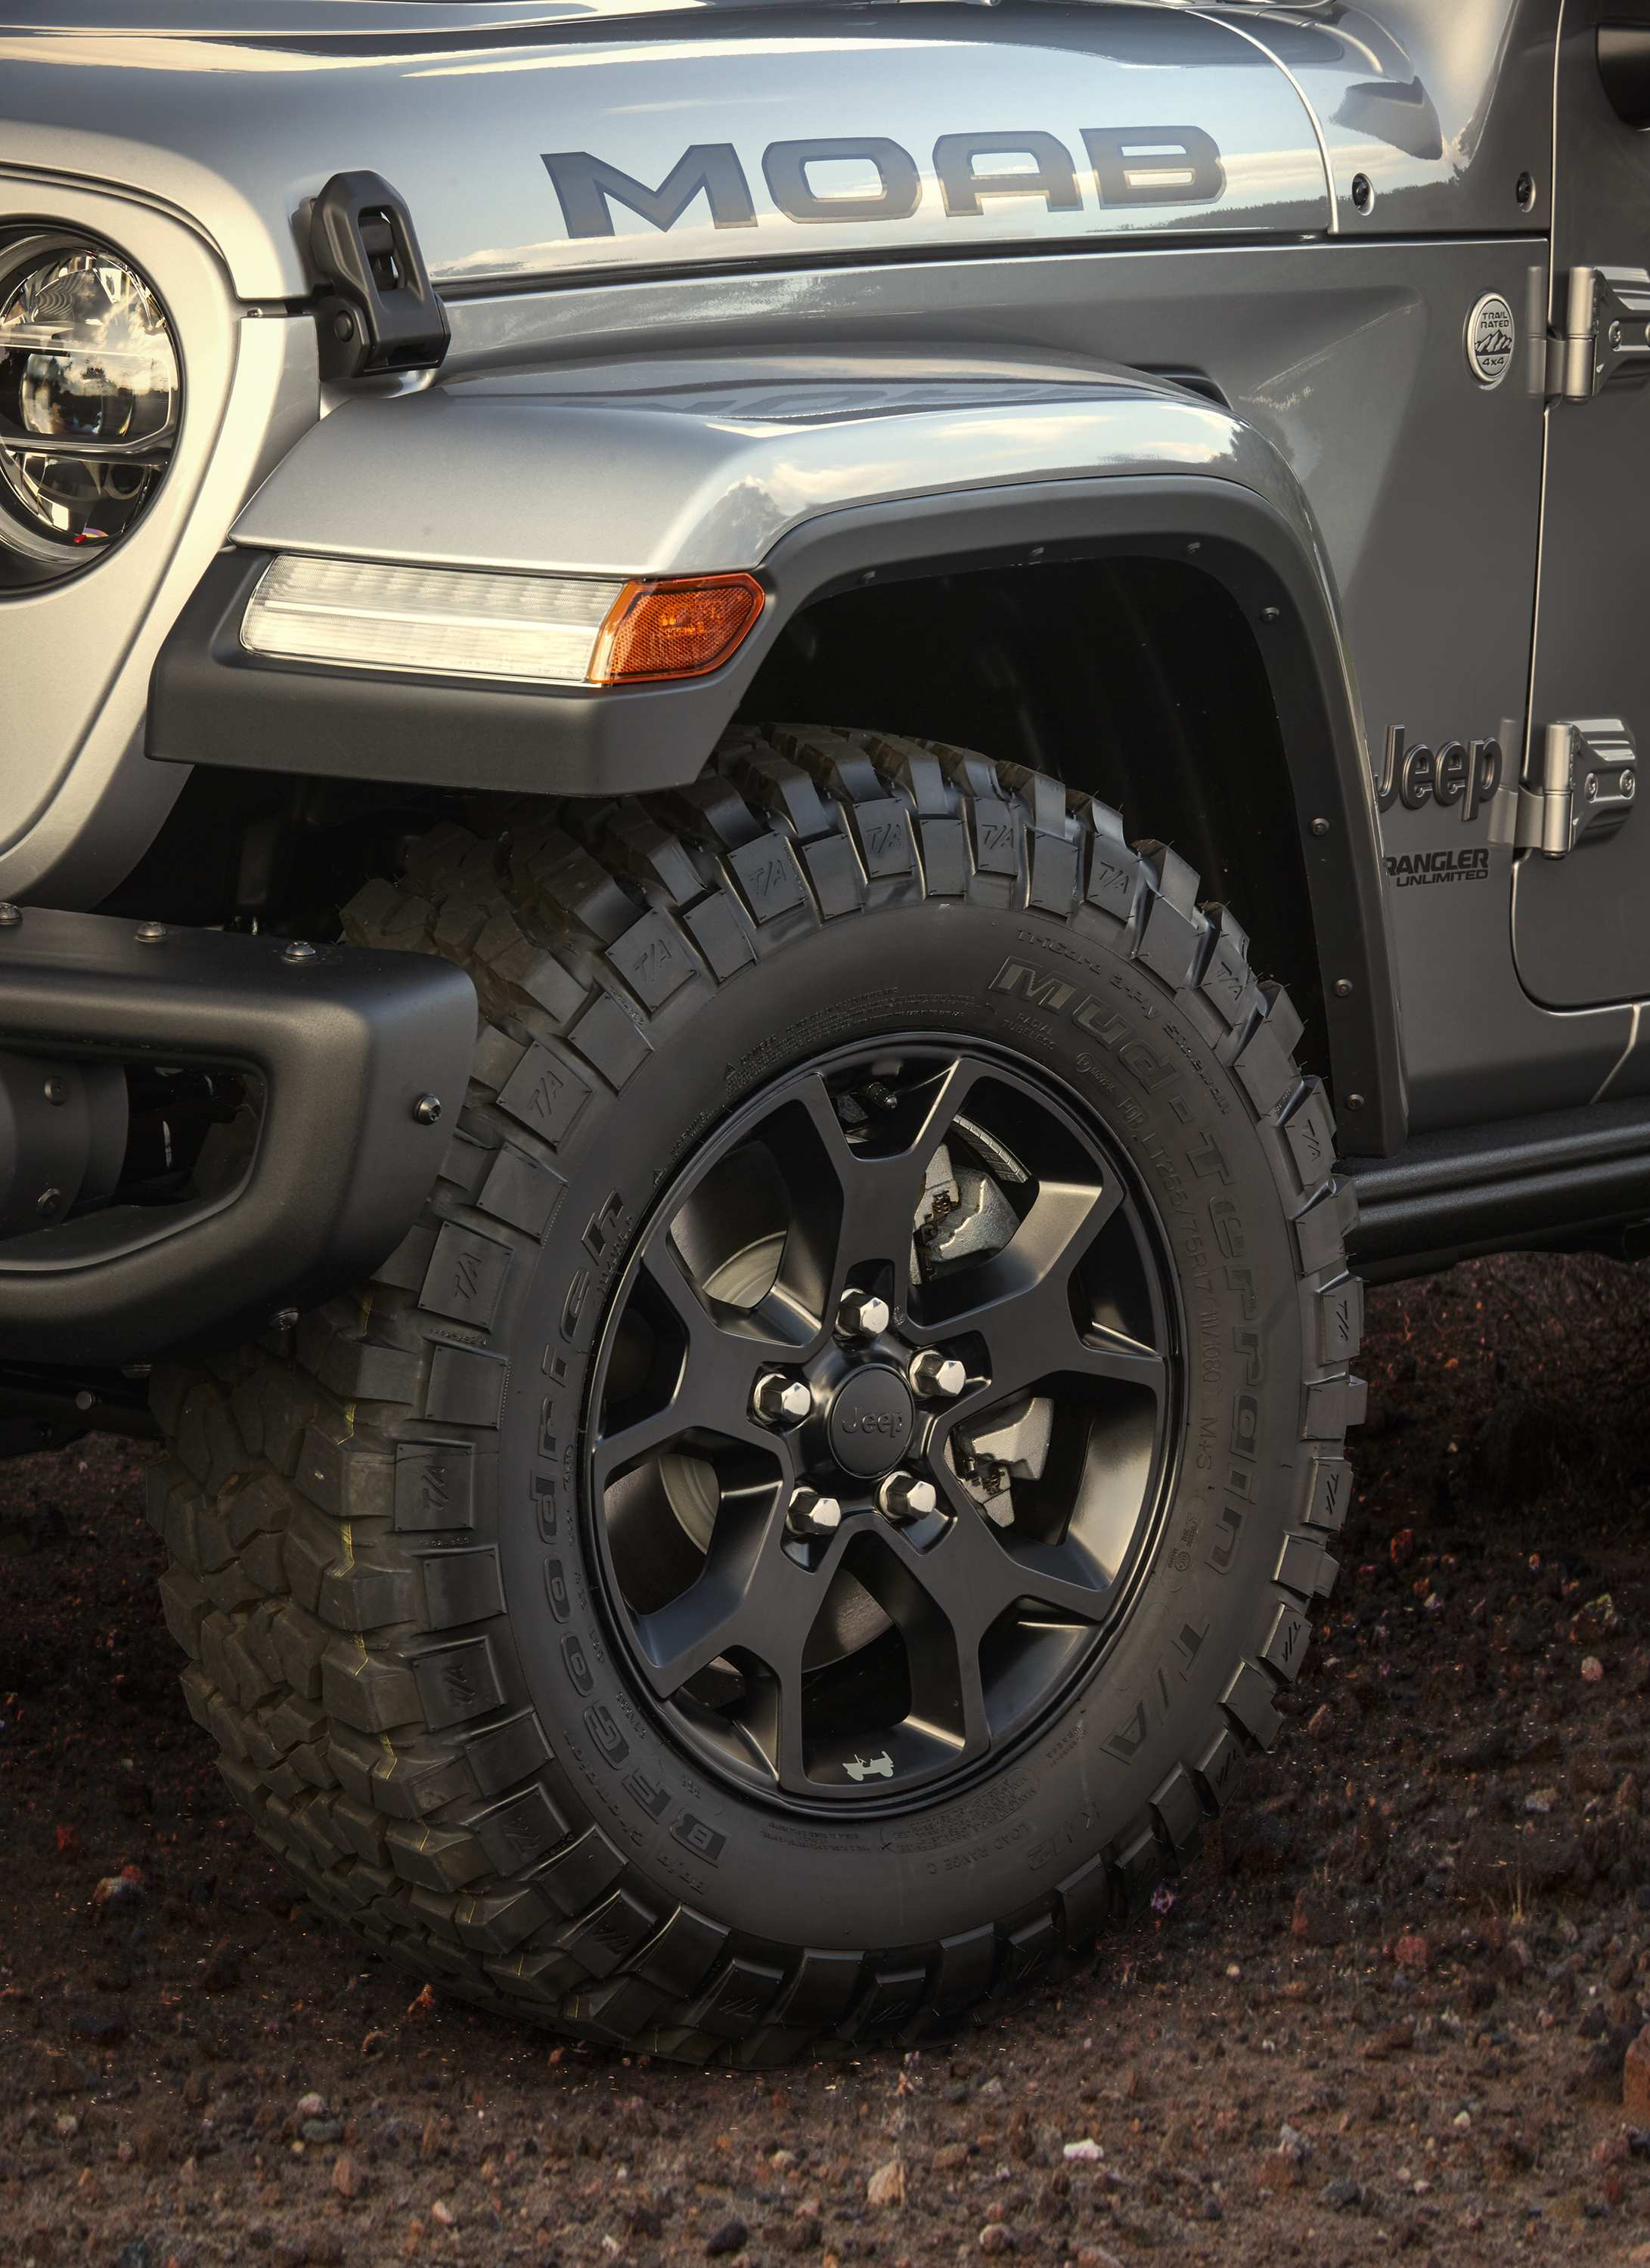 75 All New 2019 Jeep Wrangler Engine Options First Drive with 2019 Jeep Wrangler Engine Options